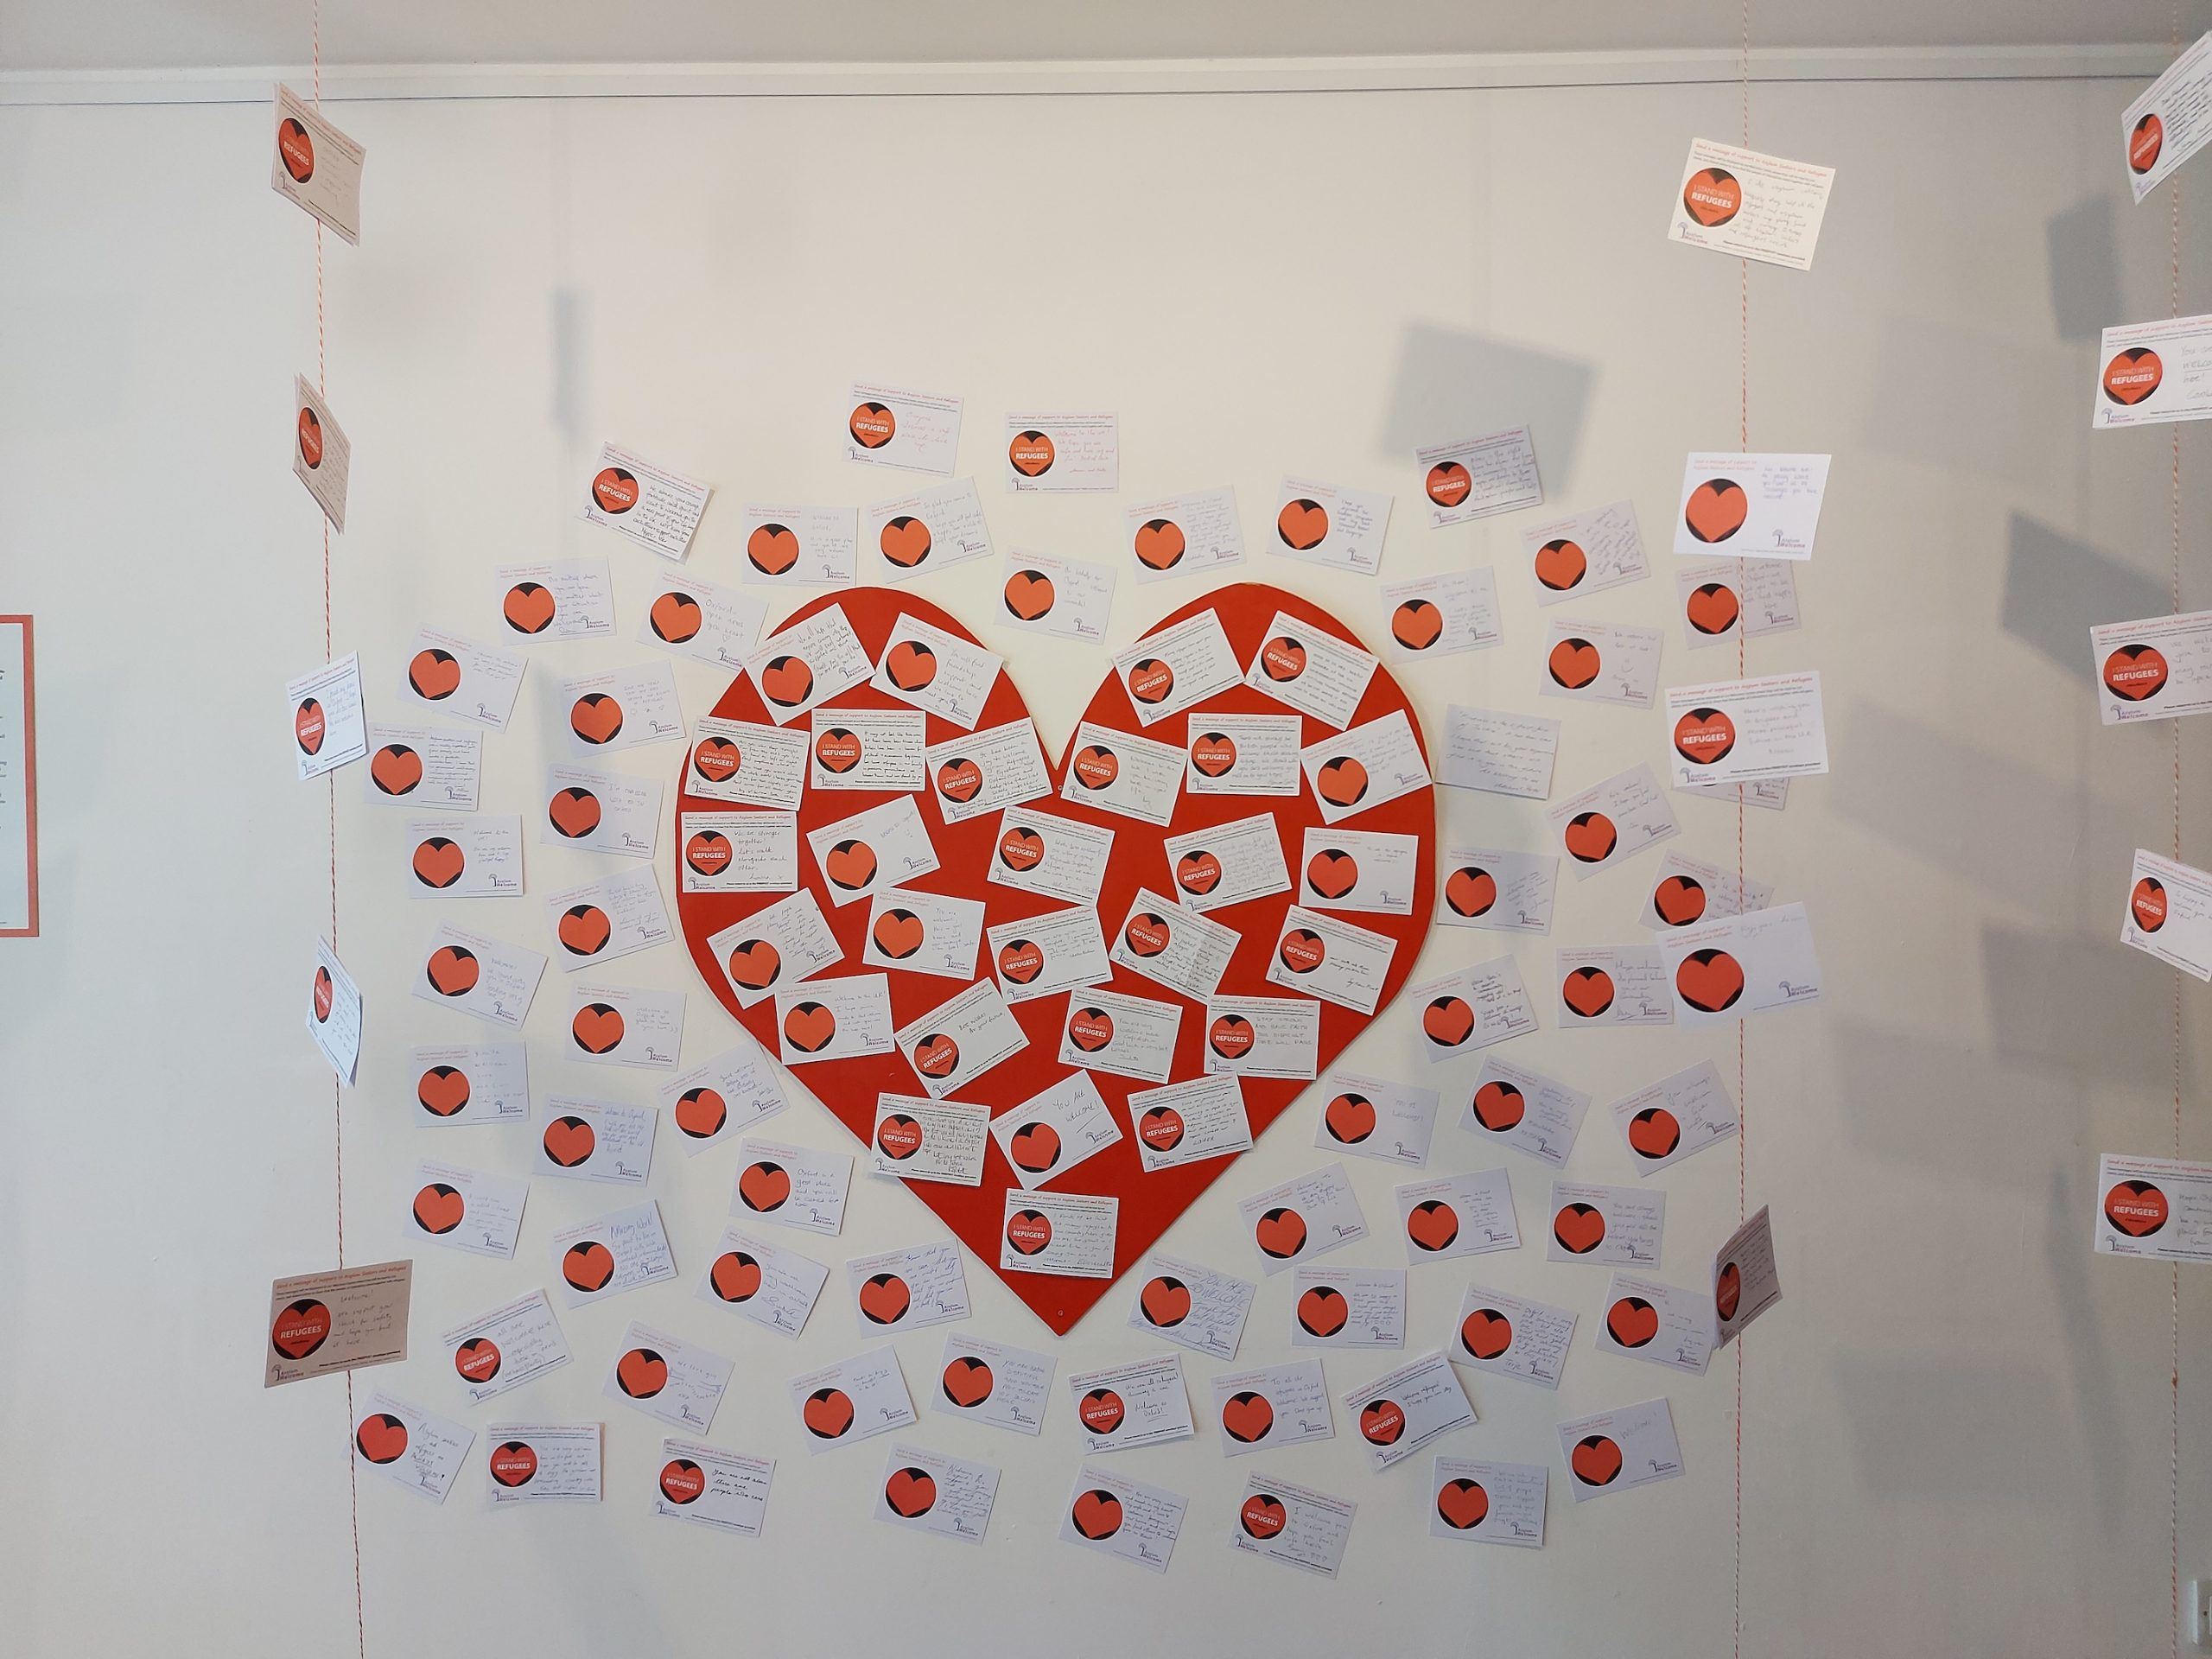 Postcards arranged in a heart